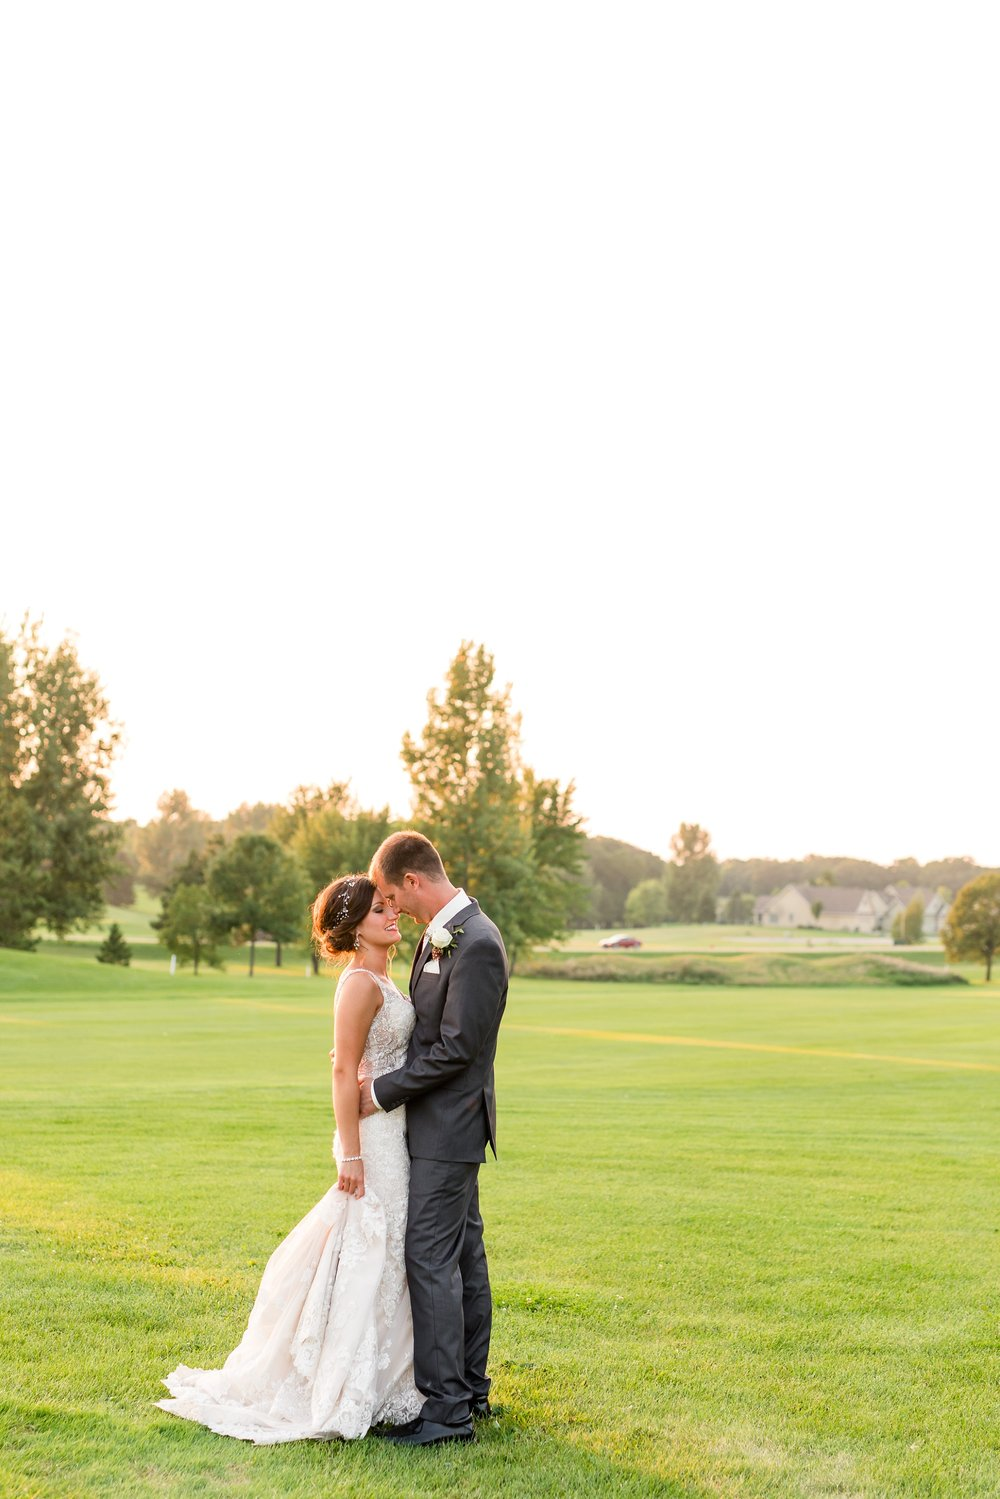 AmberLangerudPhotography_Perham Lakeside Golf Course Wedding_2897.jpg